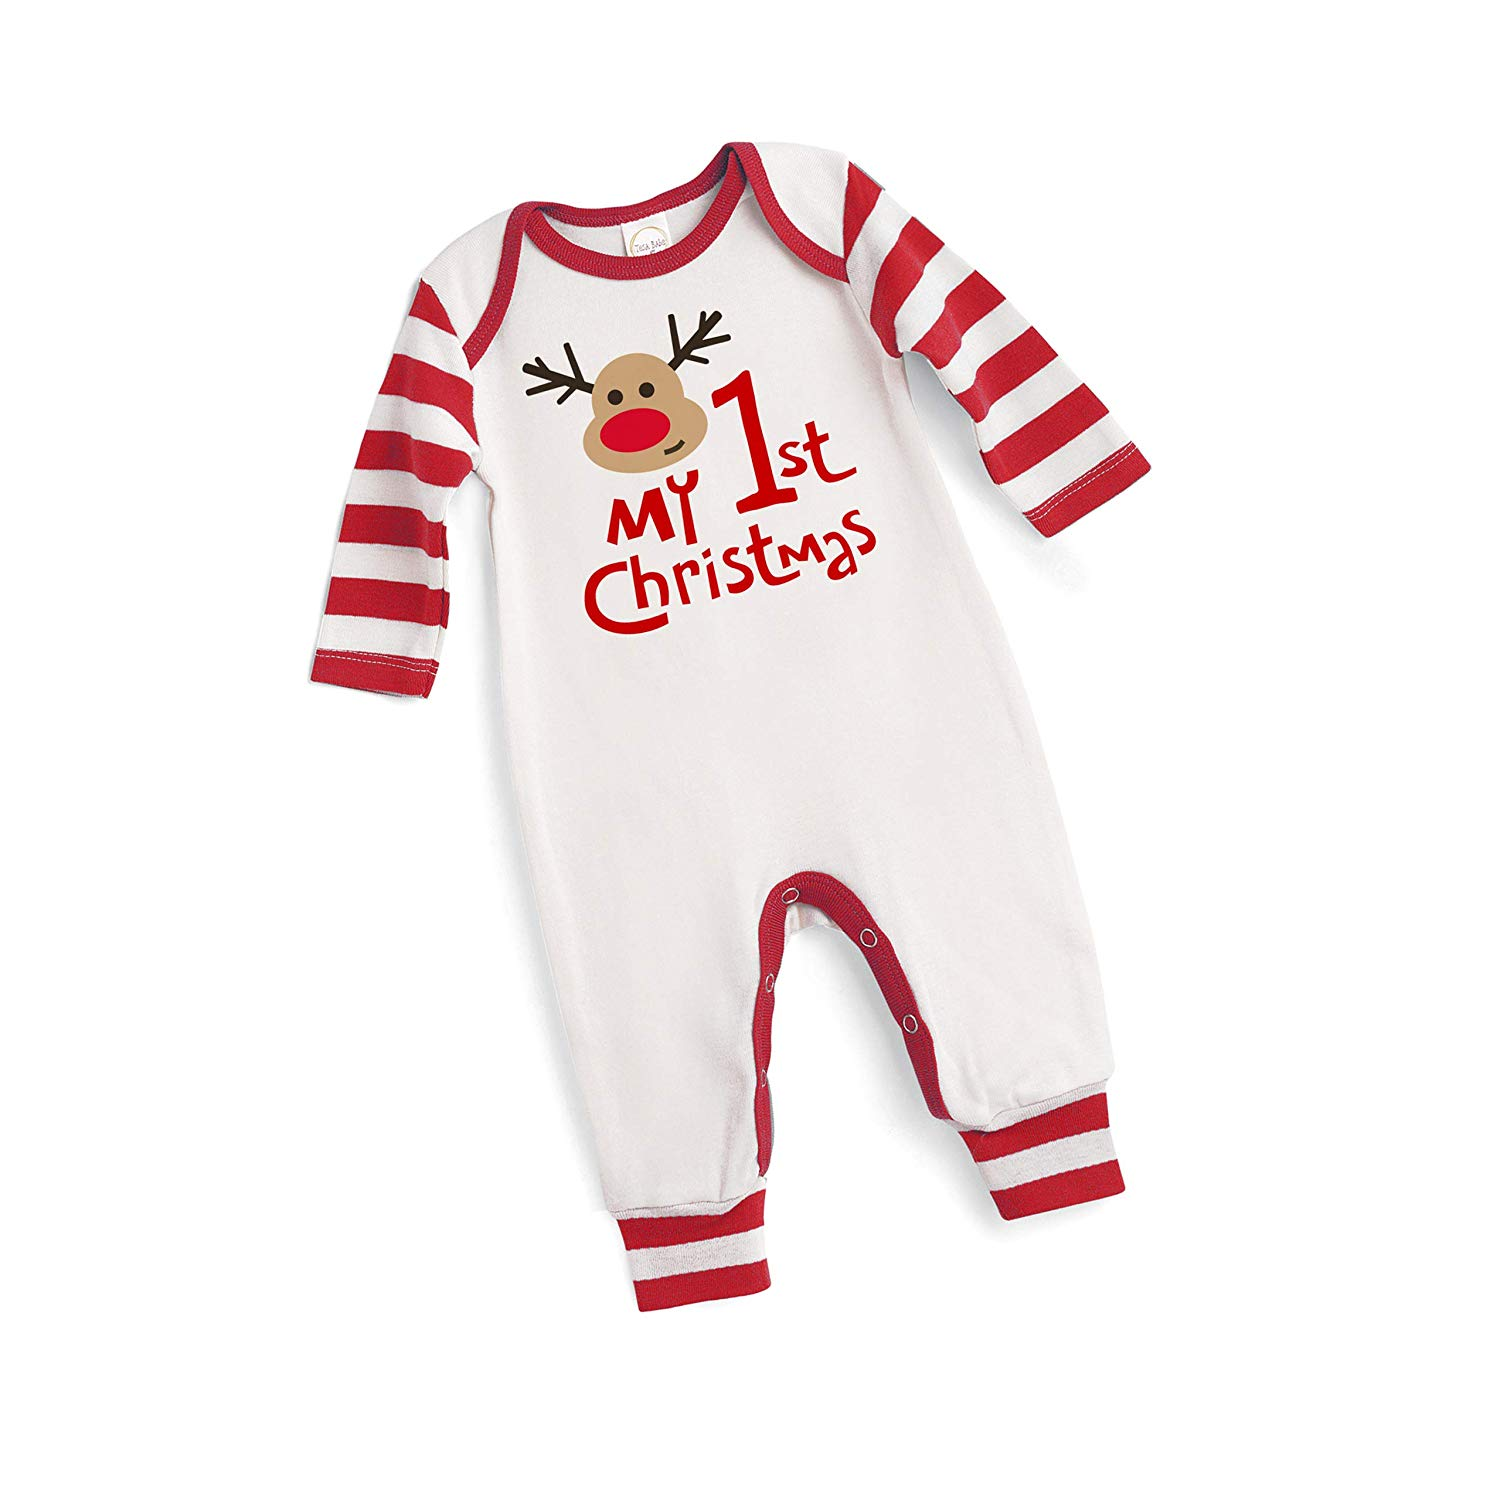 4e861568e Get Quotations · Tesa Babe My 1st Christmas Baby Onesie in Red and White  Ivory Striped Sleeves